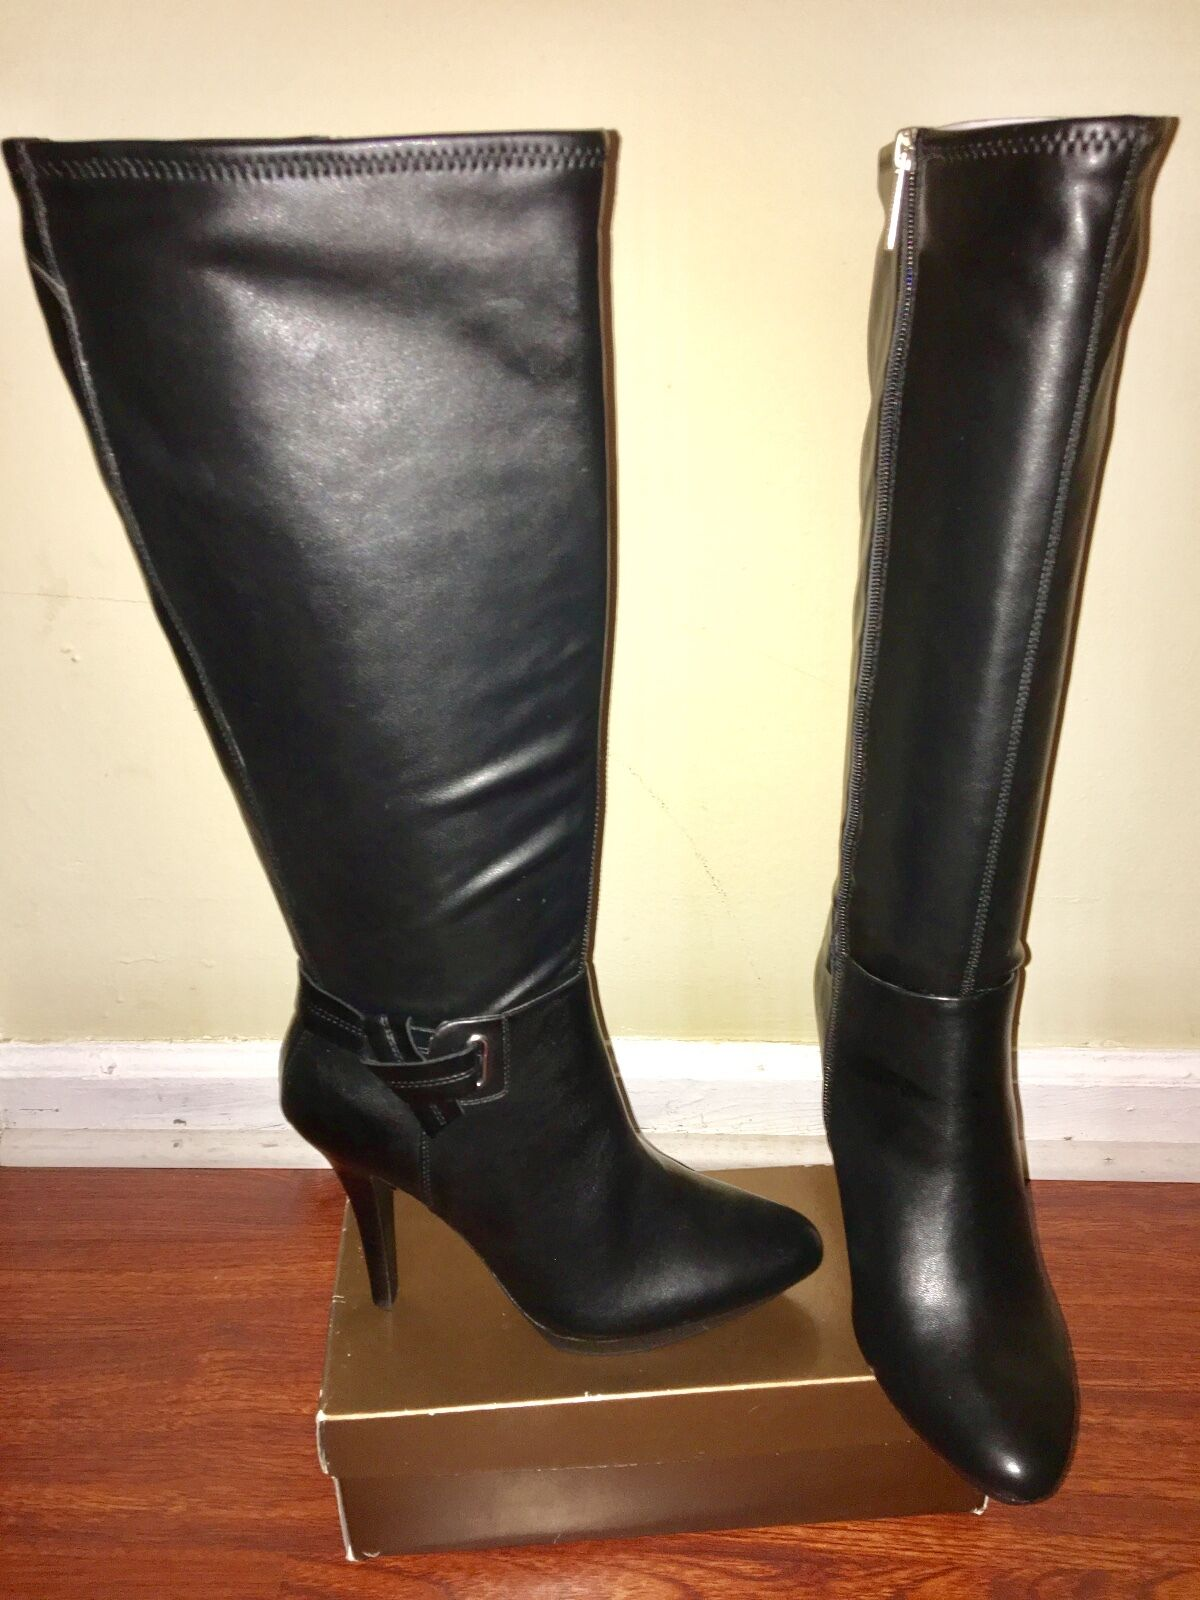 NEW Woman's  Nine West Black Leather Knee High Boots with 4 inch heels Size 8.5